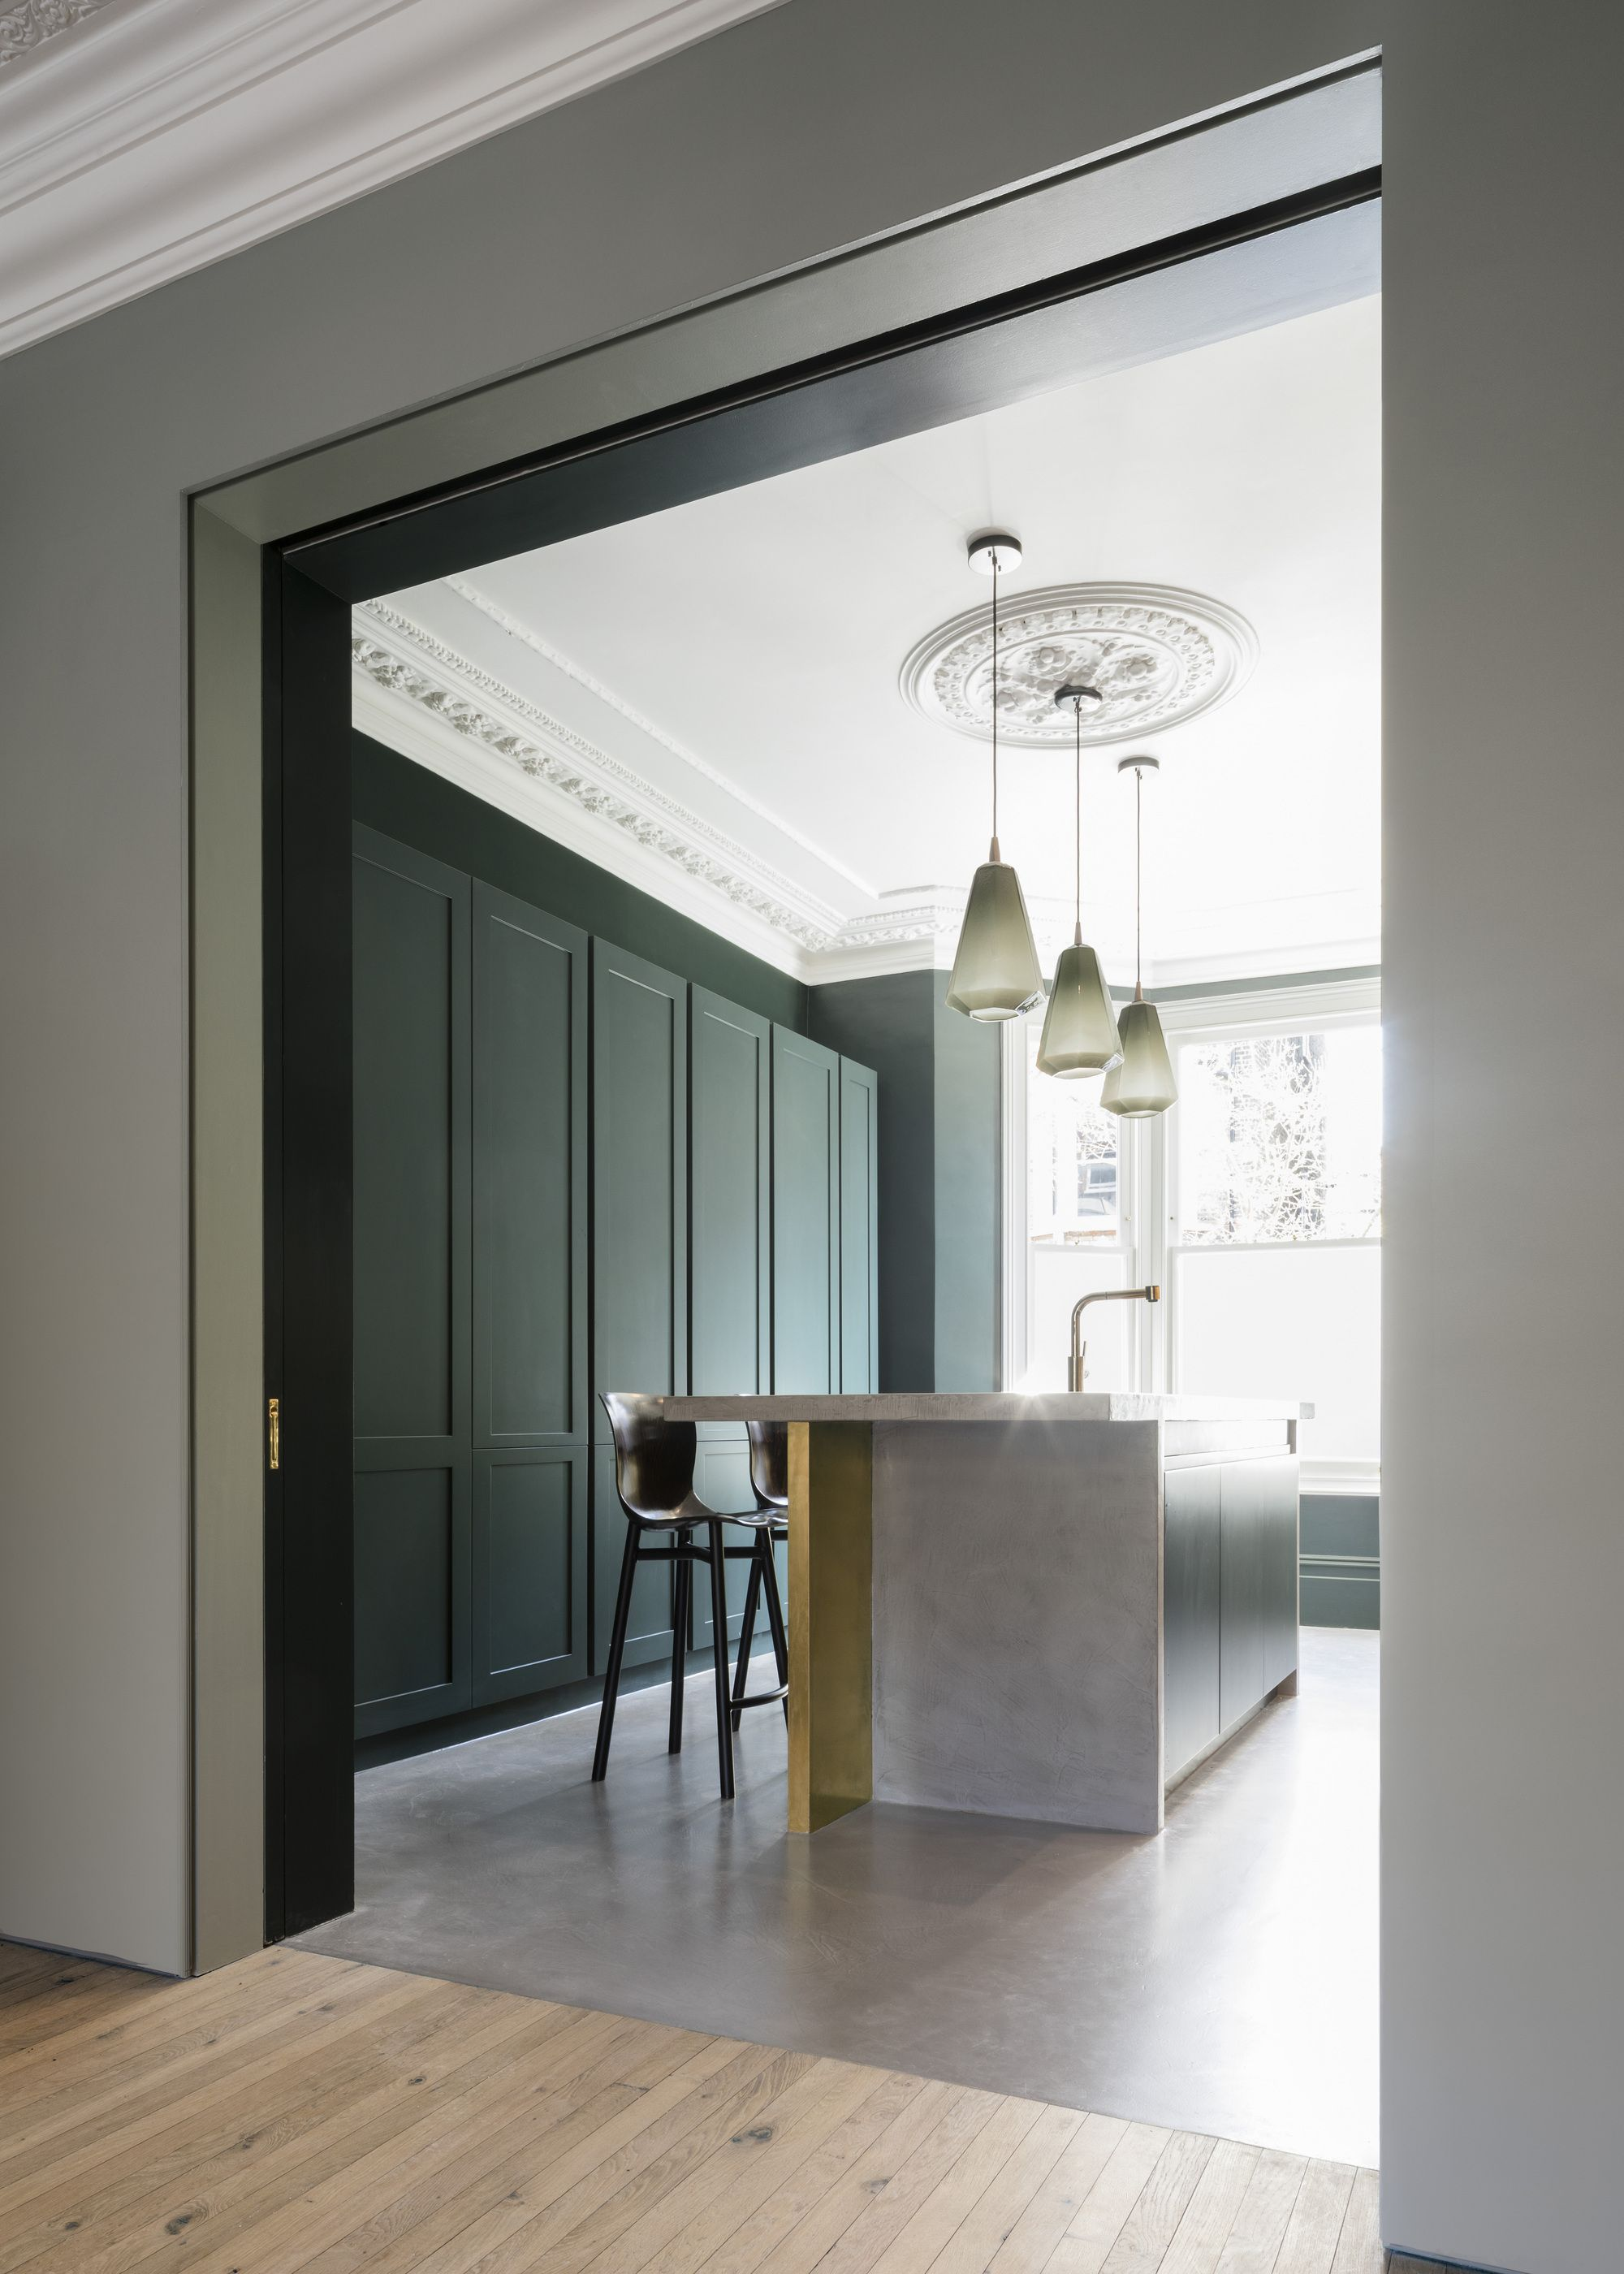 Step is  minimal home located in london united kingdom designed by bureau de change architects instead of the more expected glass structure also pinterest kitchen design interior rh